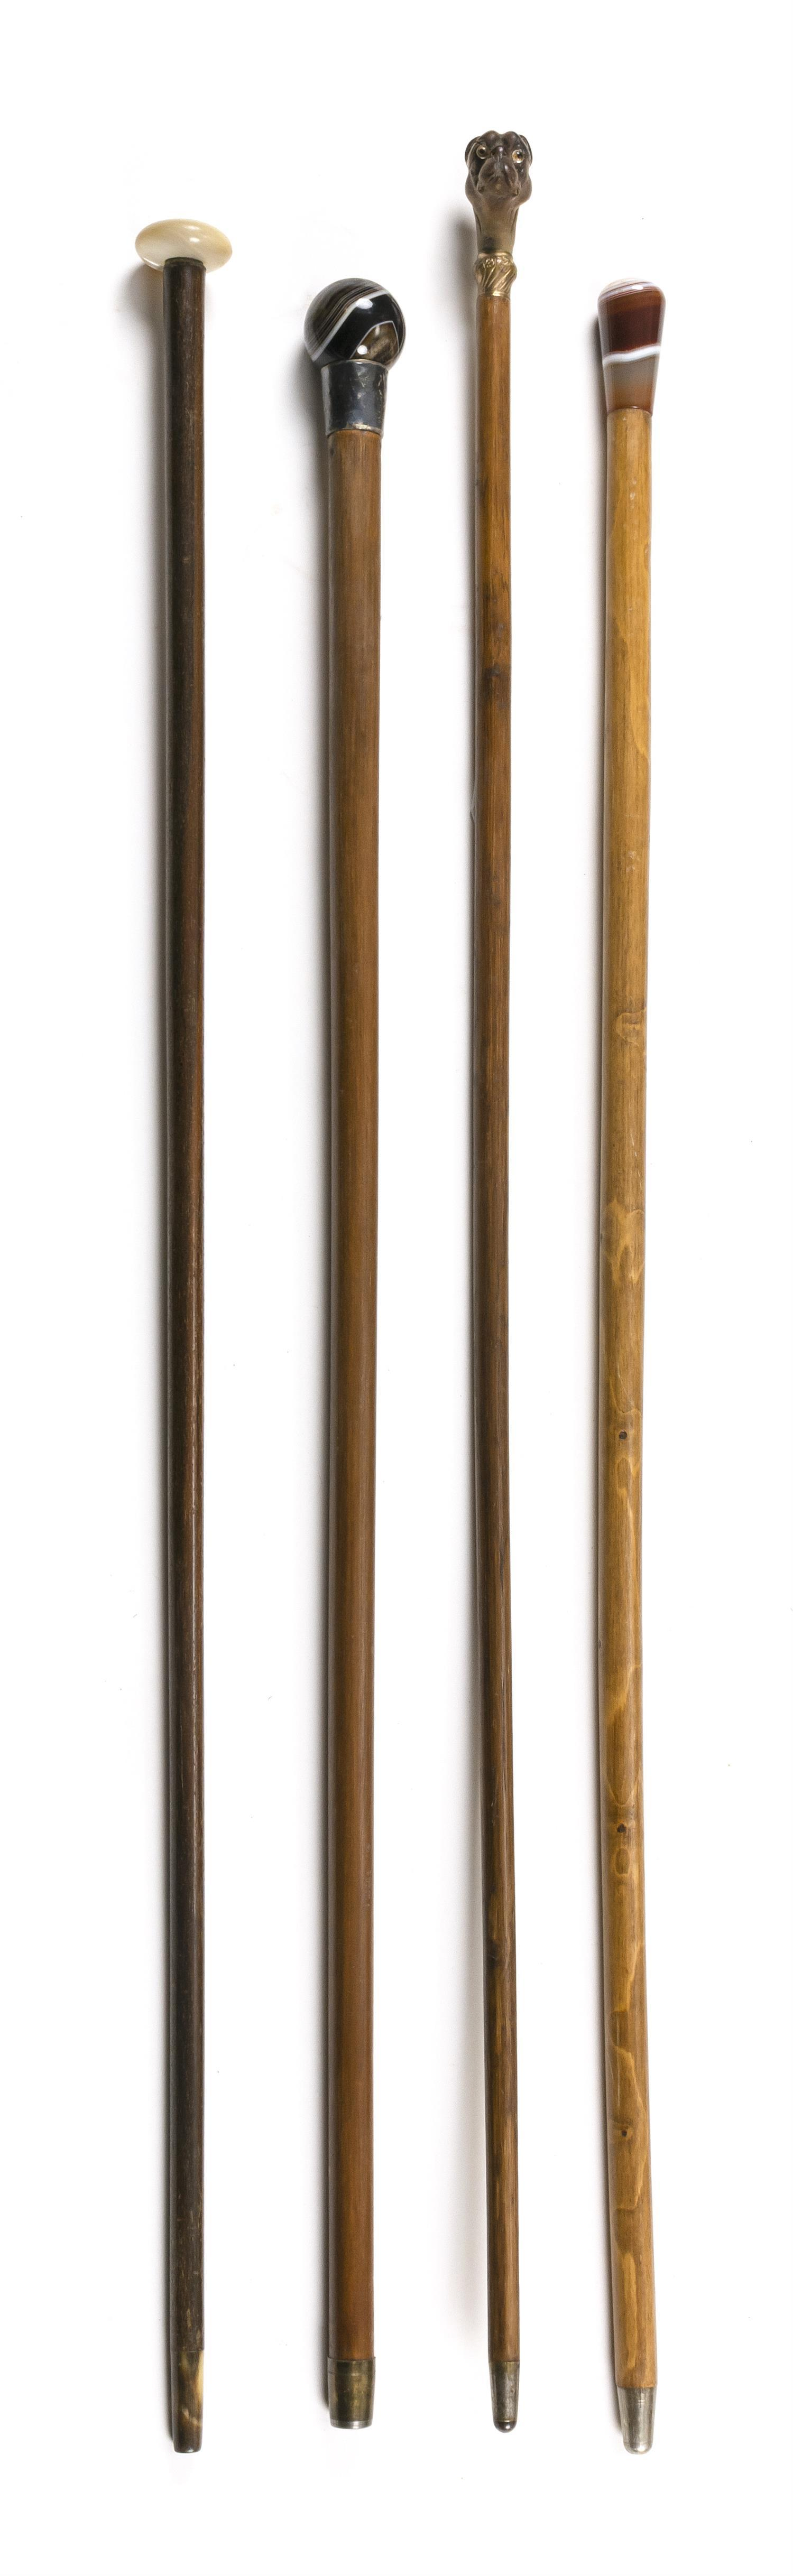 FOUR CANES Two with swirled glass handles, one with a mother-of-pearl flattened ball handle, and one with wooden handle carved in th...